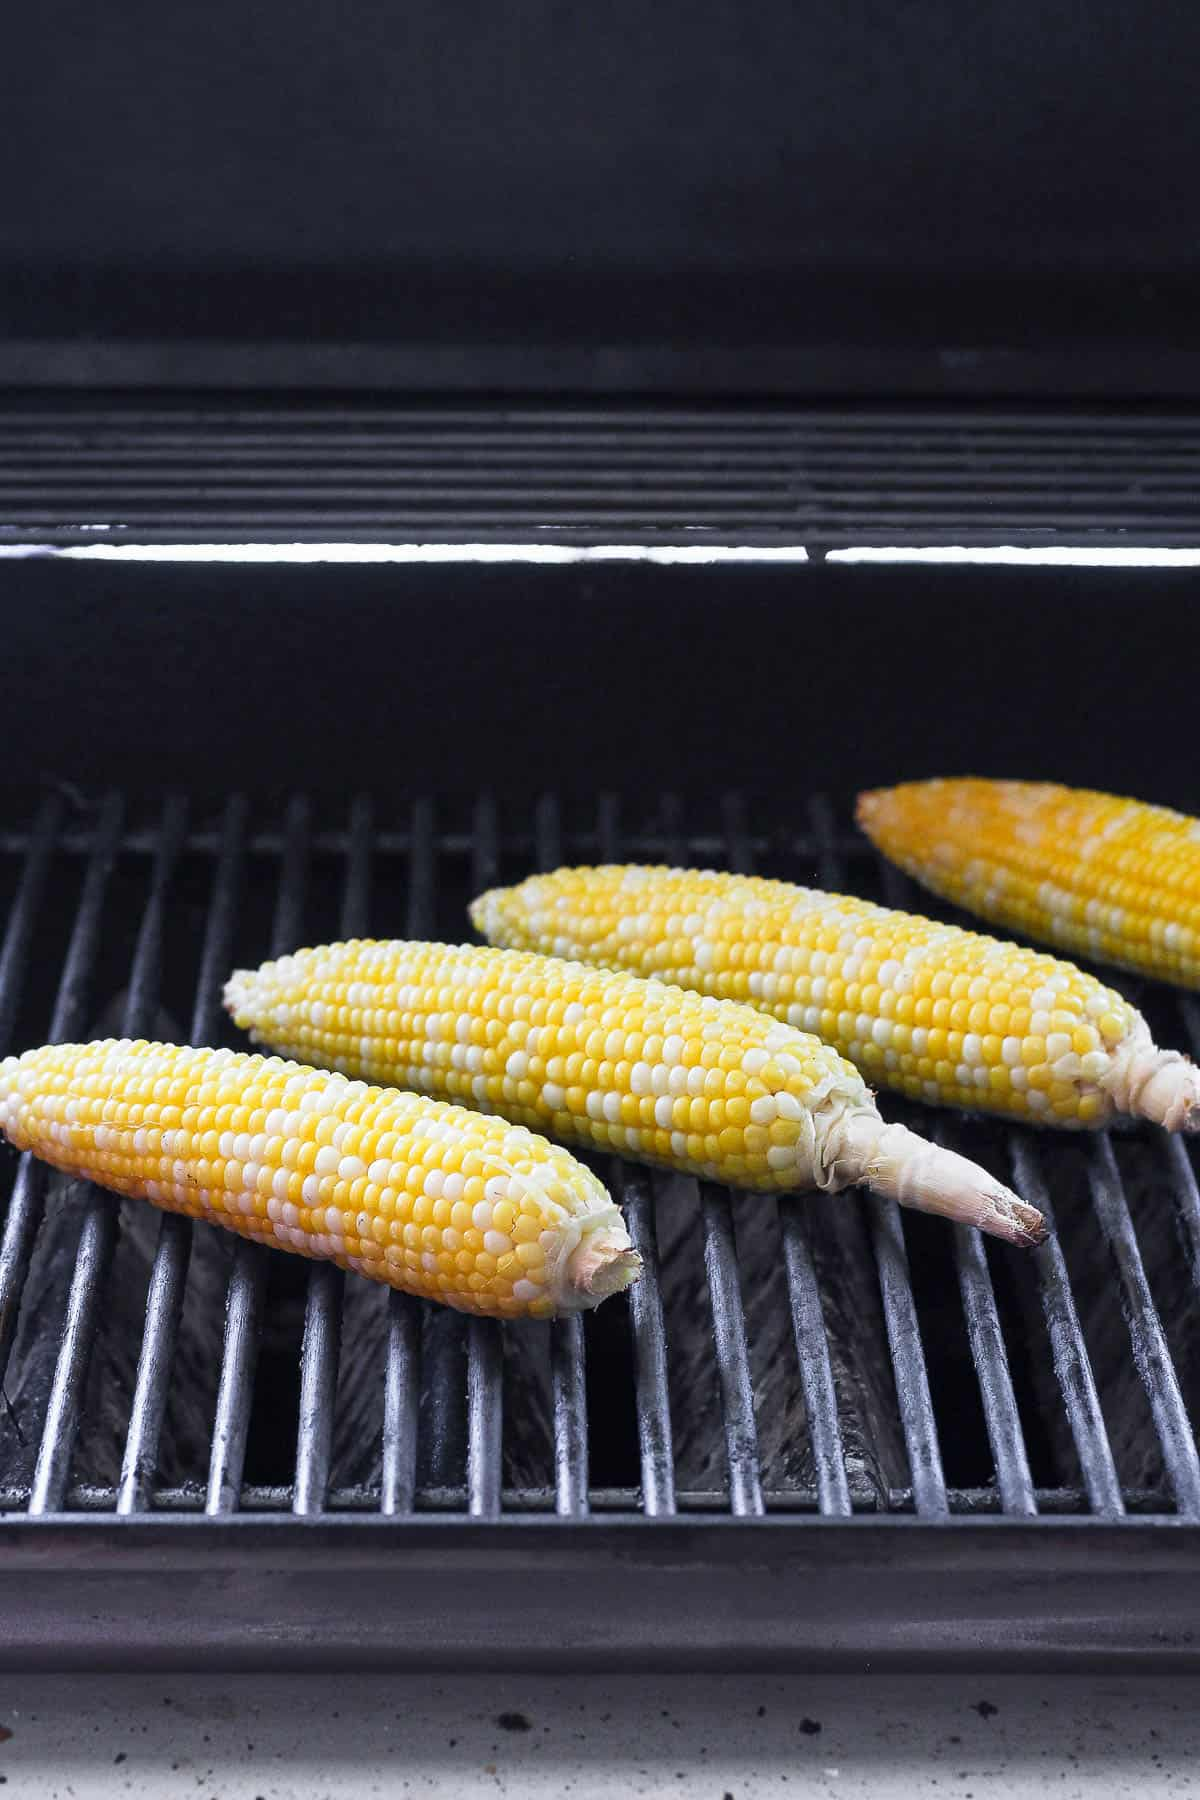 Grill with 4 corn on the cob without husk